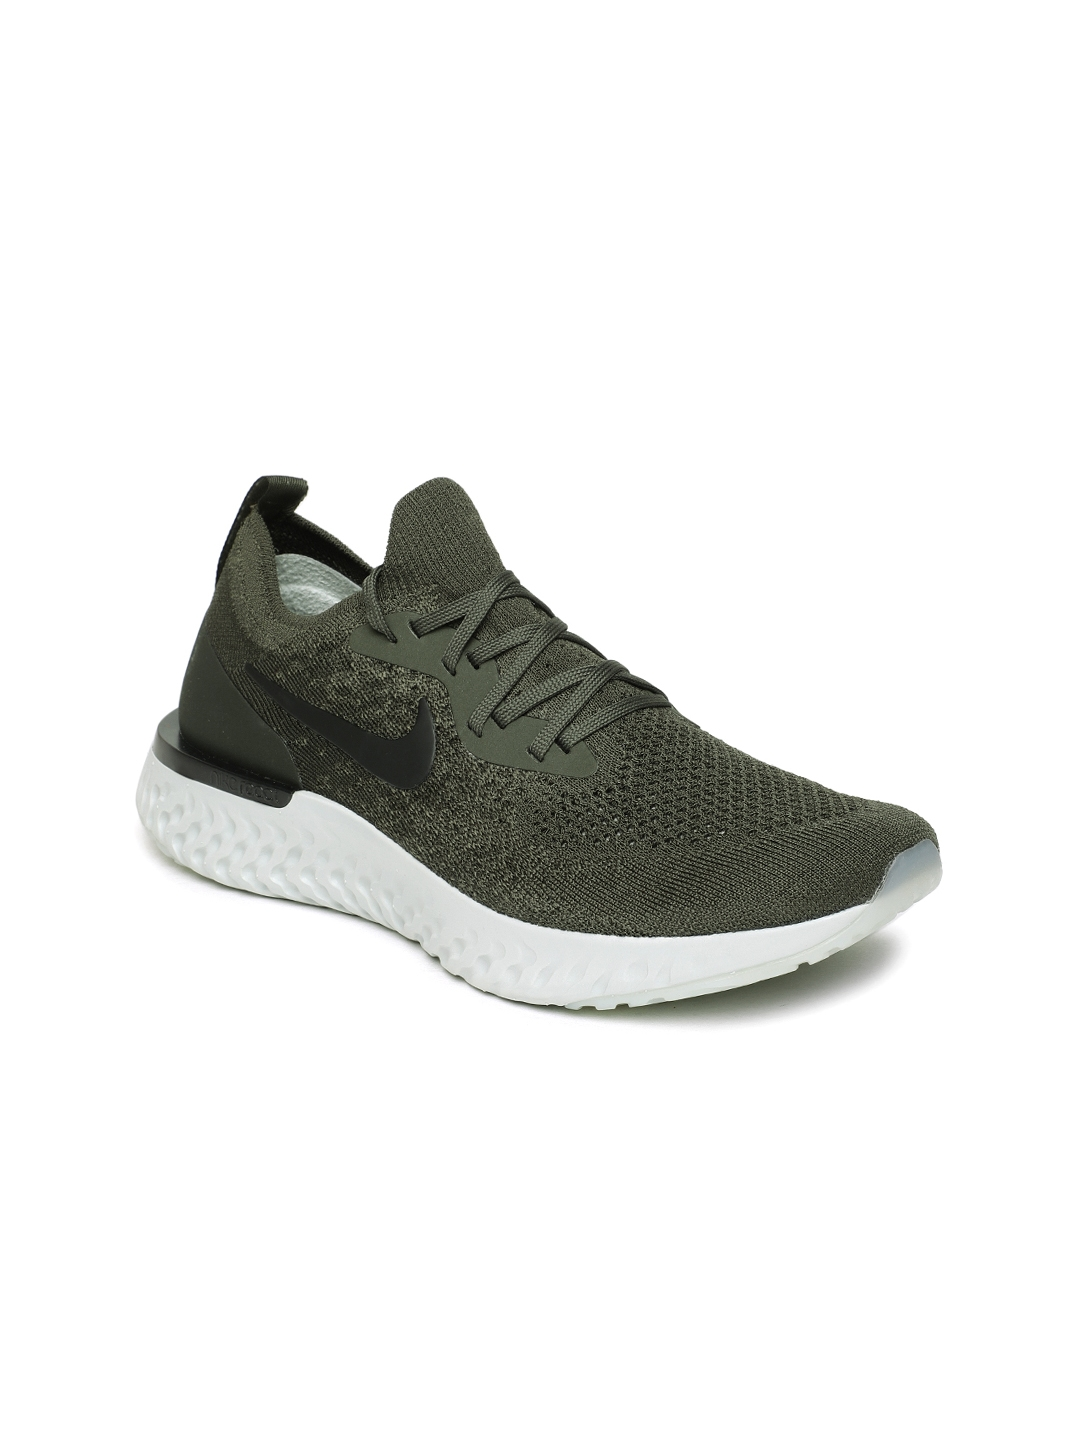 7b5c9bdbf1bba ... order nike women olive green epic react flyknit running shoes 4045c  ed927